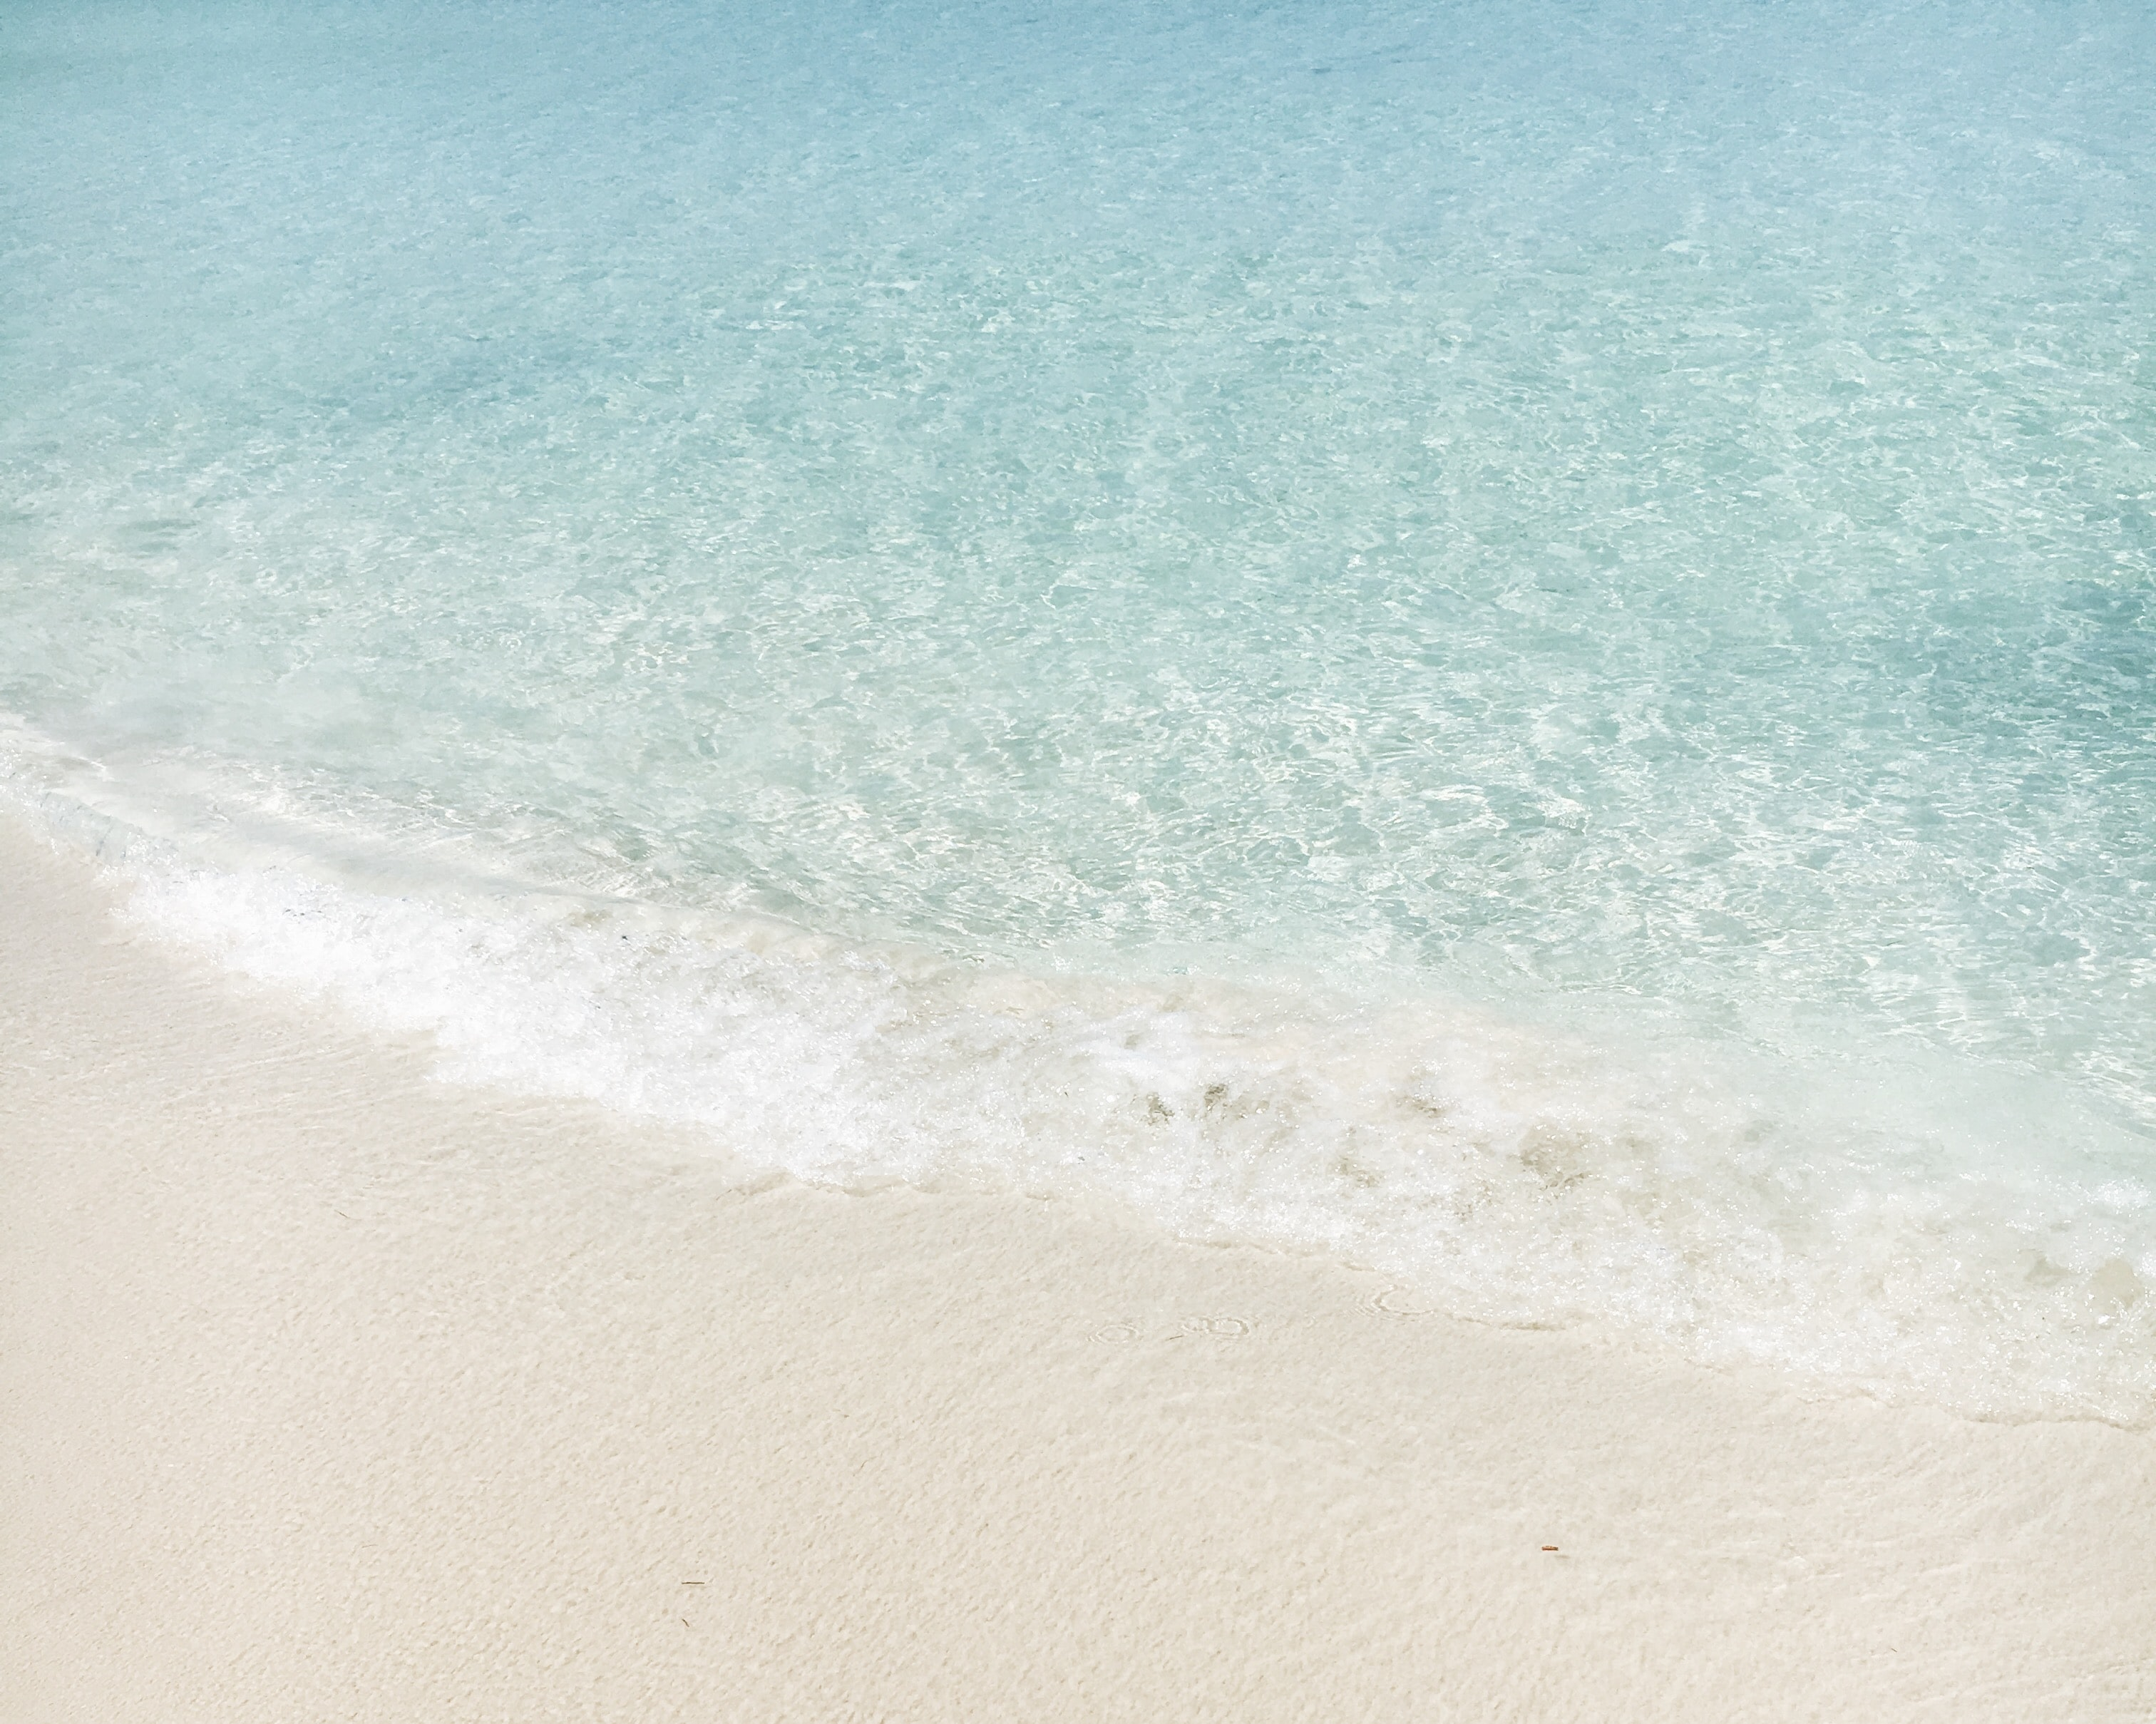 Crystal clear waves coming in on a white sandy beach.